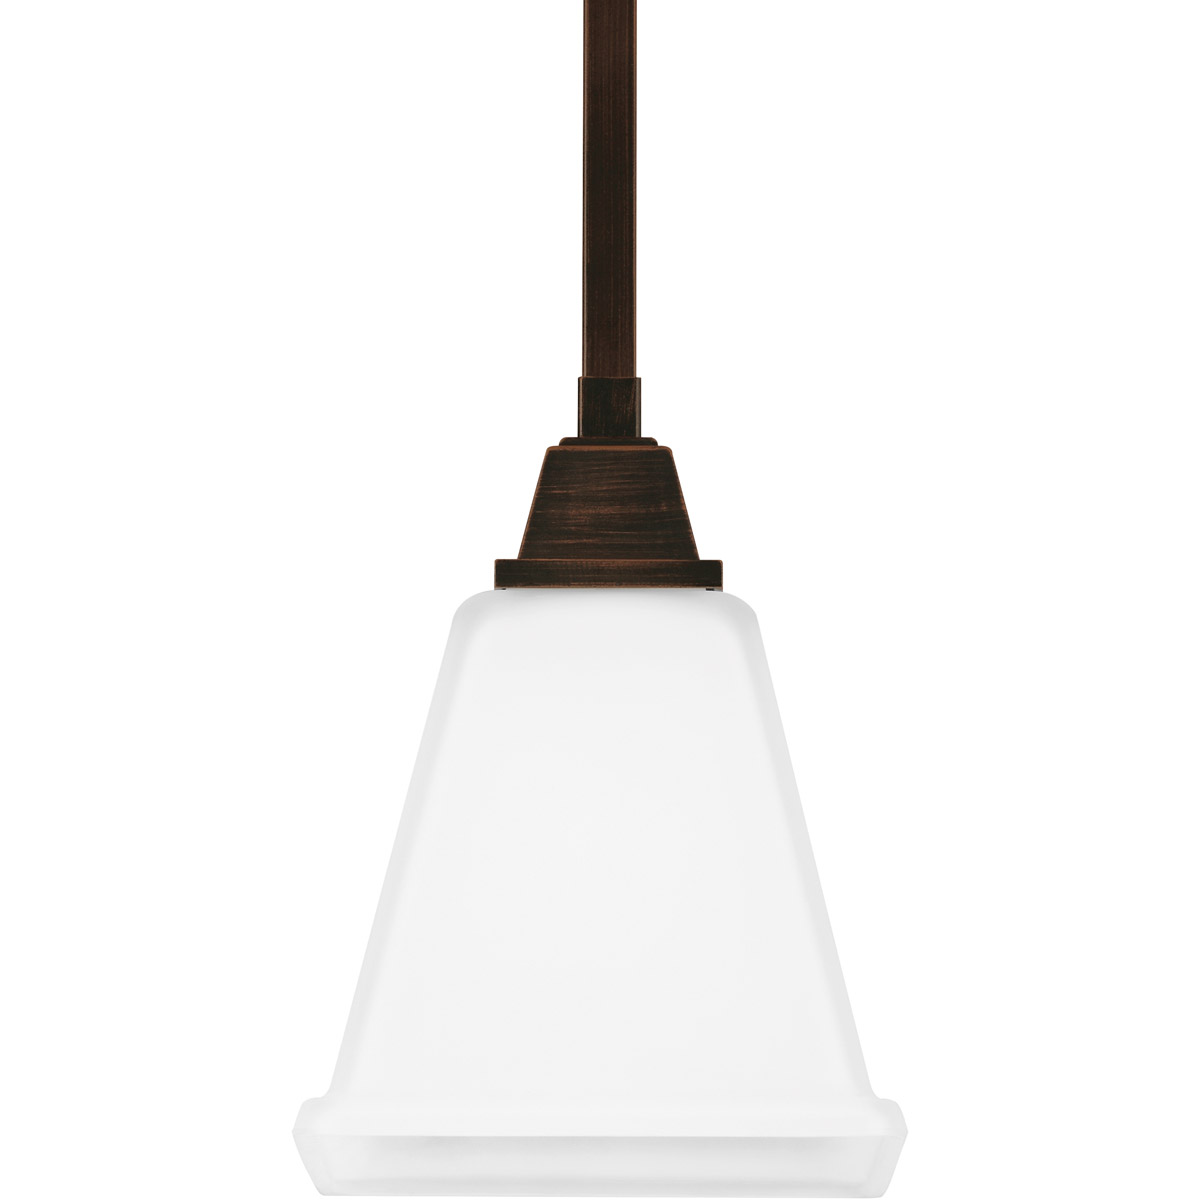 Sea Gull Denhelm 1 Light Mini Pendant in Burnt Sienna 6150401-710 photo